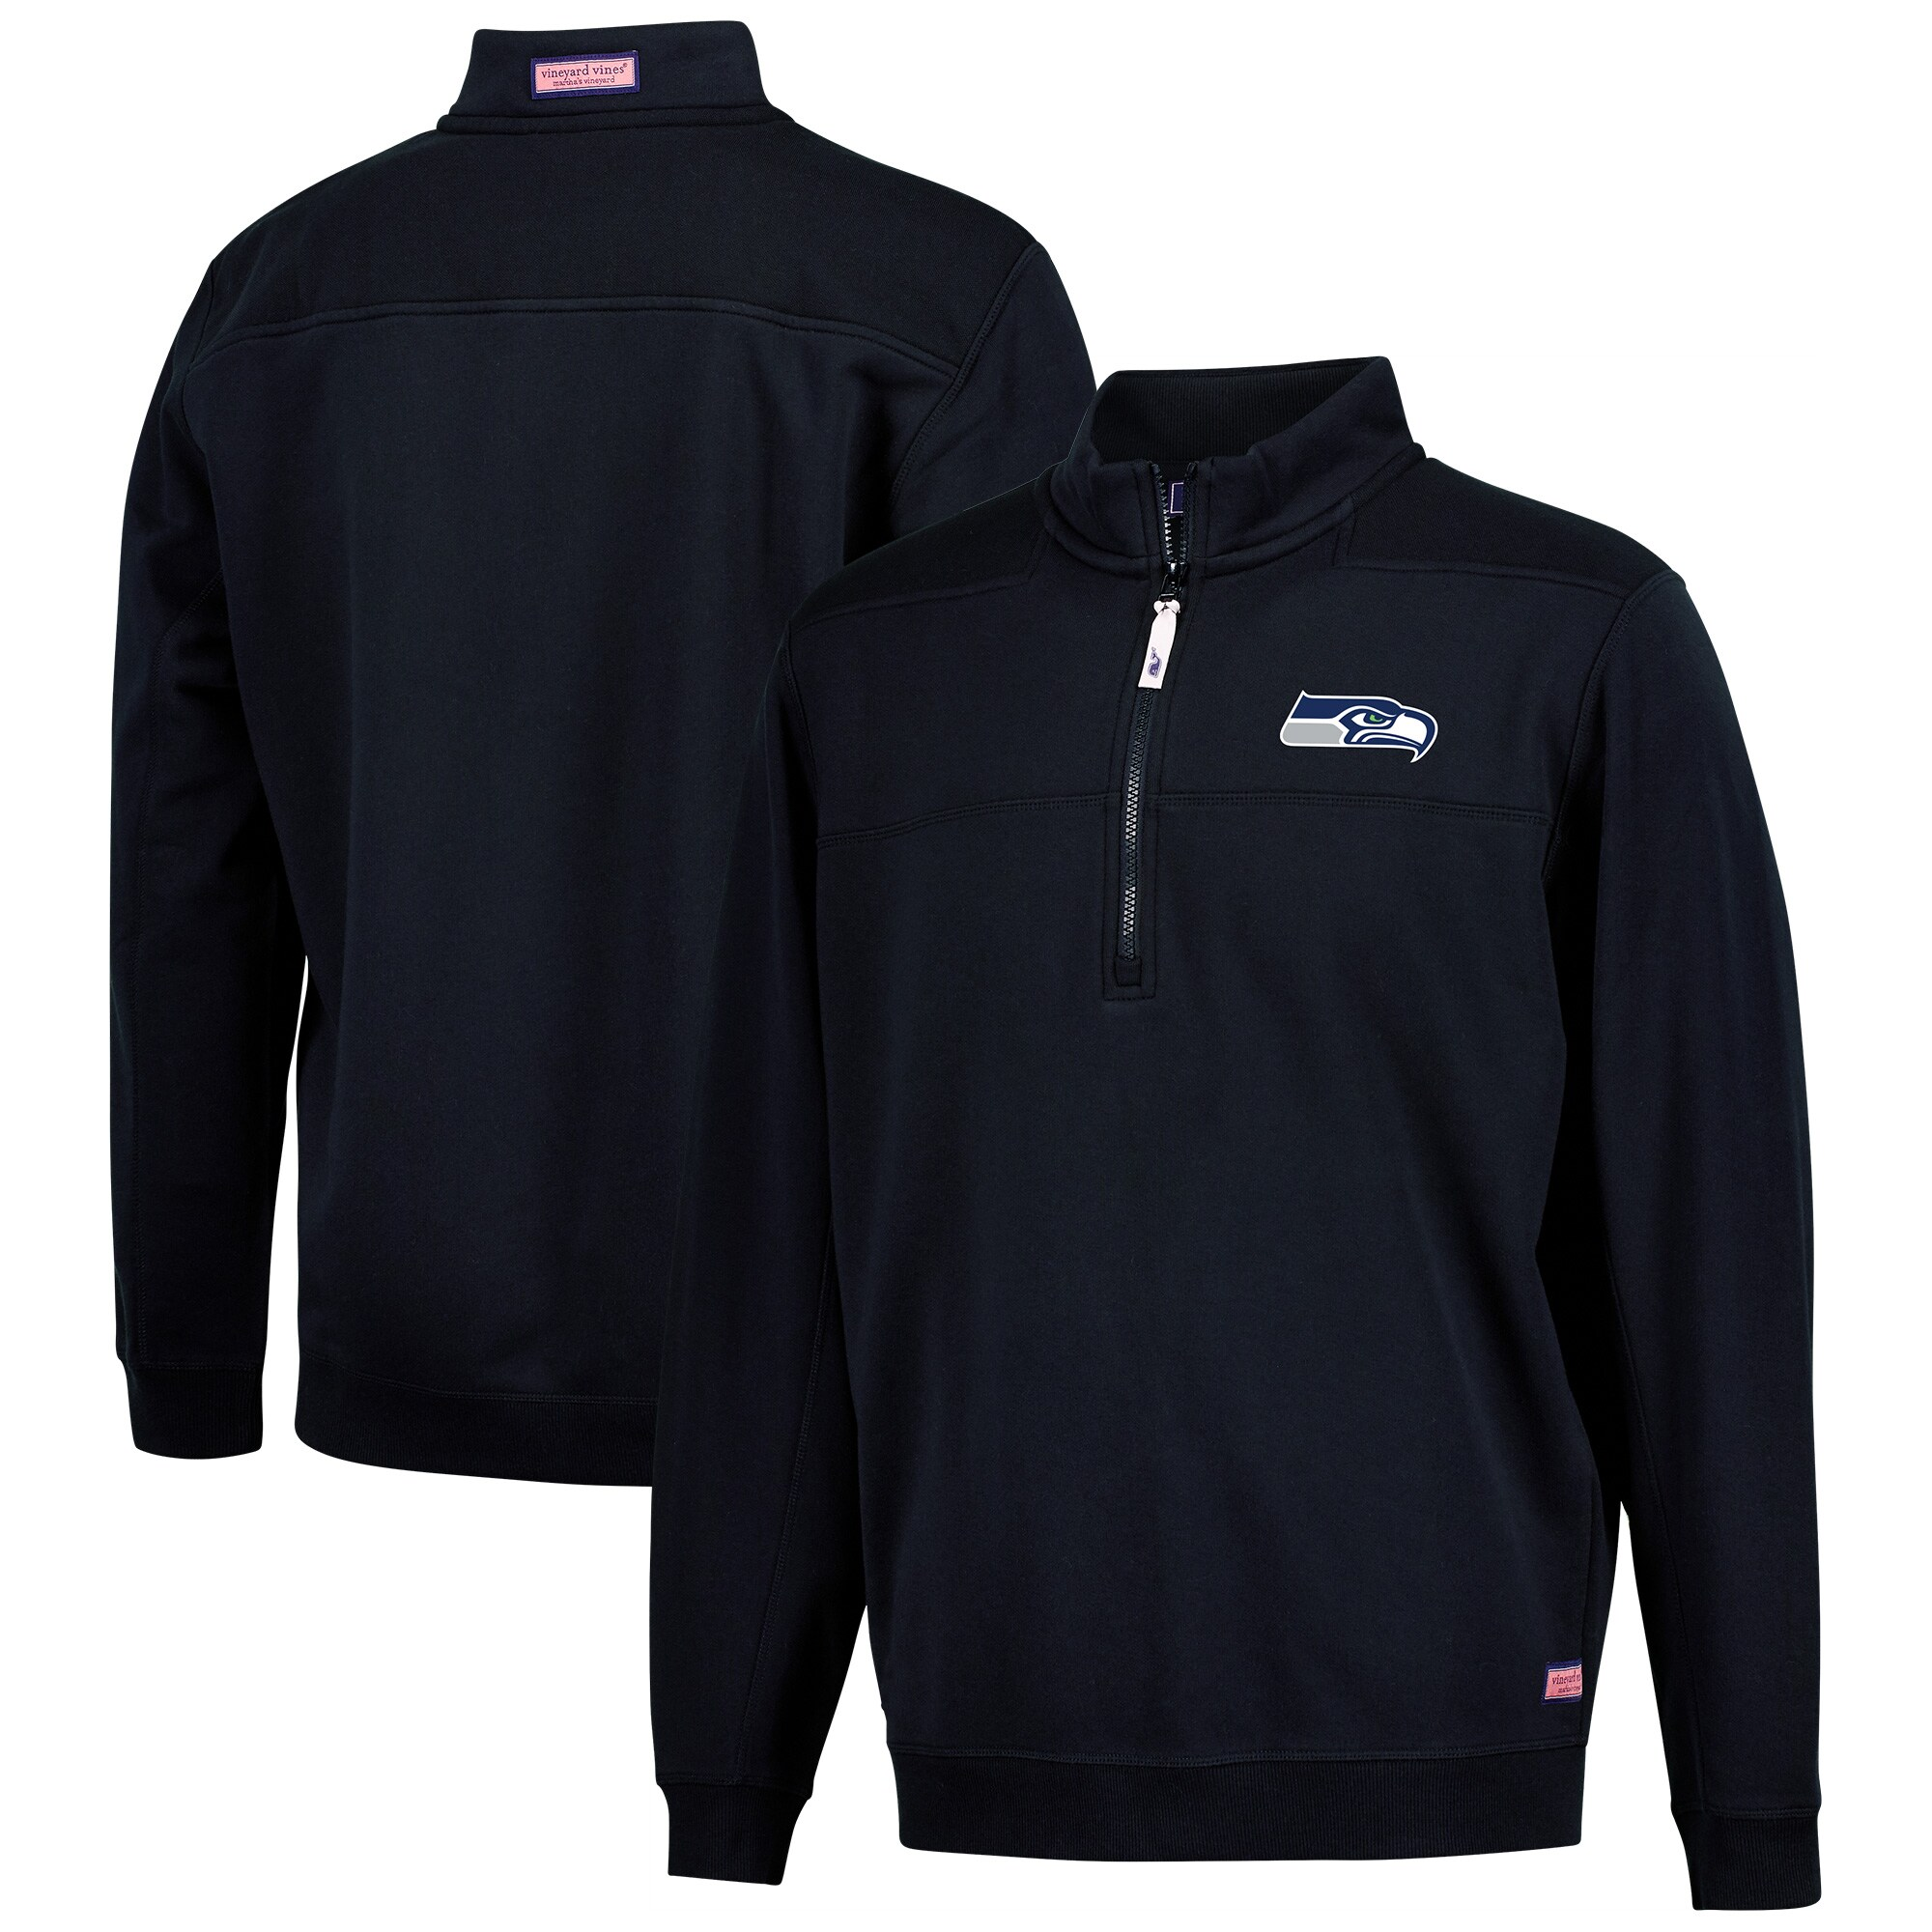 Seattle Seahawks Vineyard Vines Collegiate Shep Shirt Quarter-Zip Pullover Jacket - College Navy